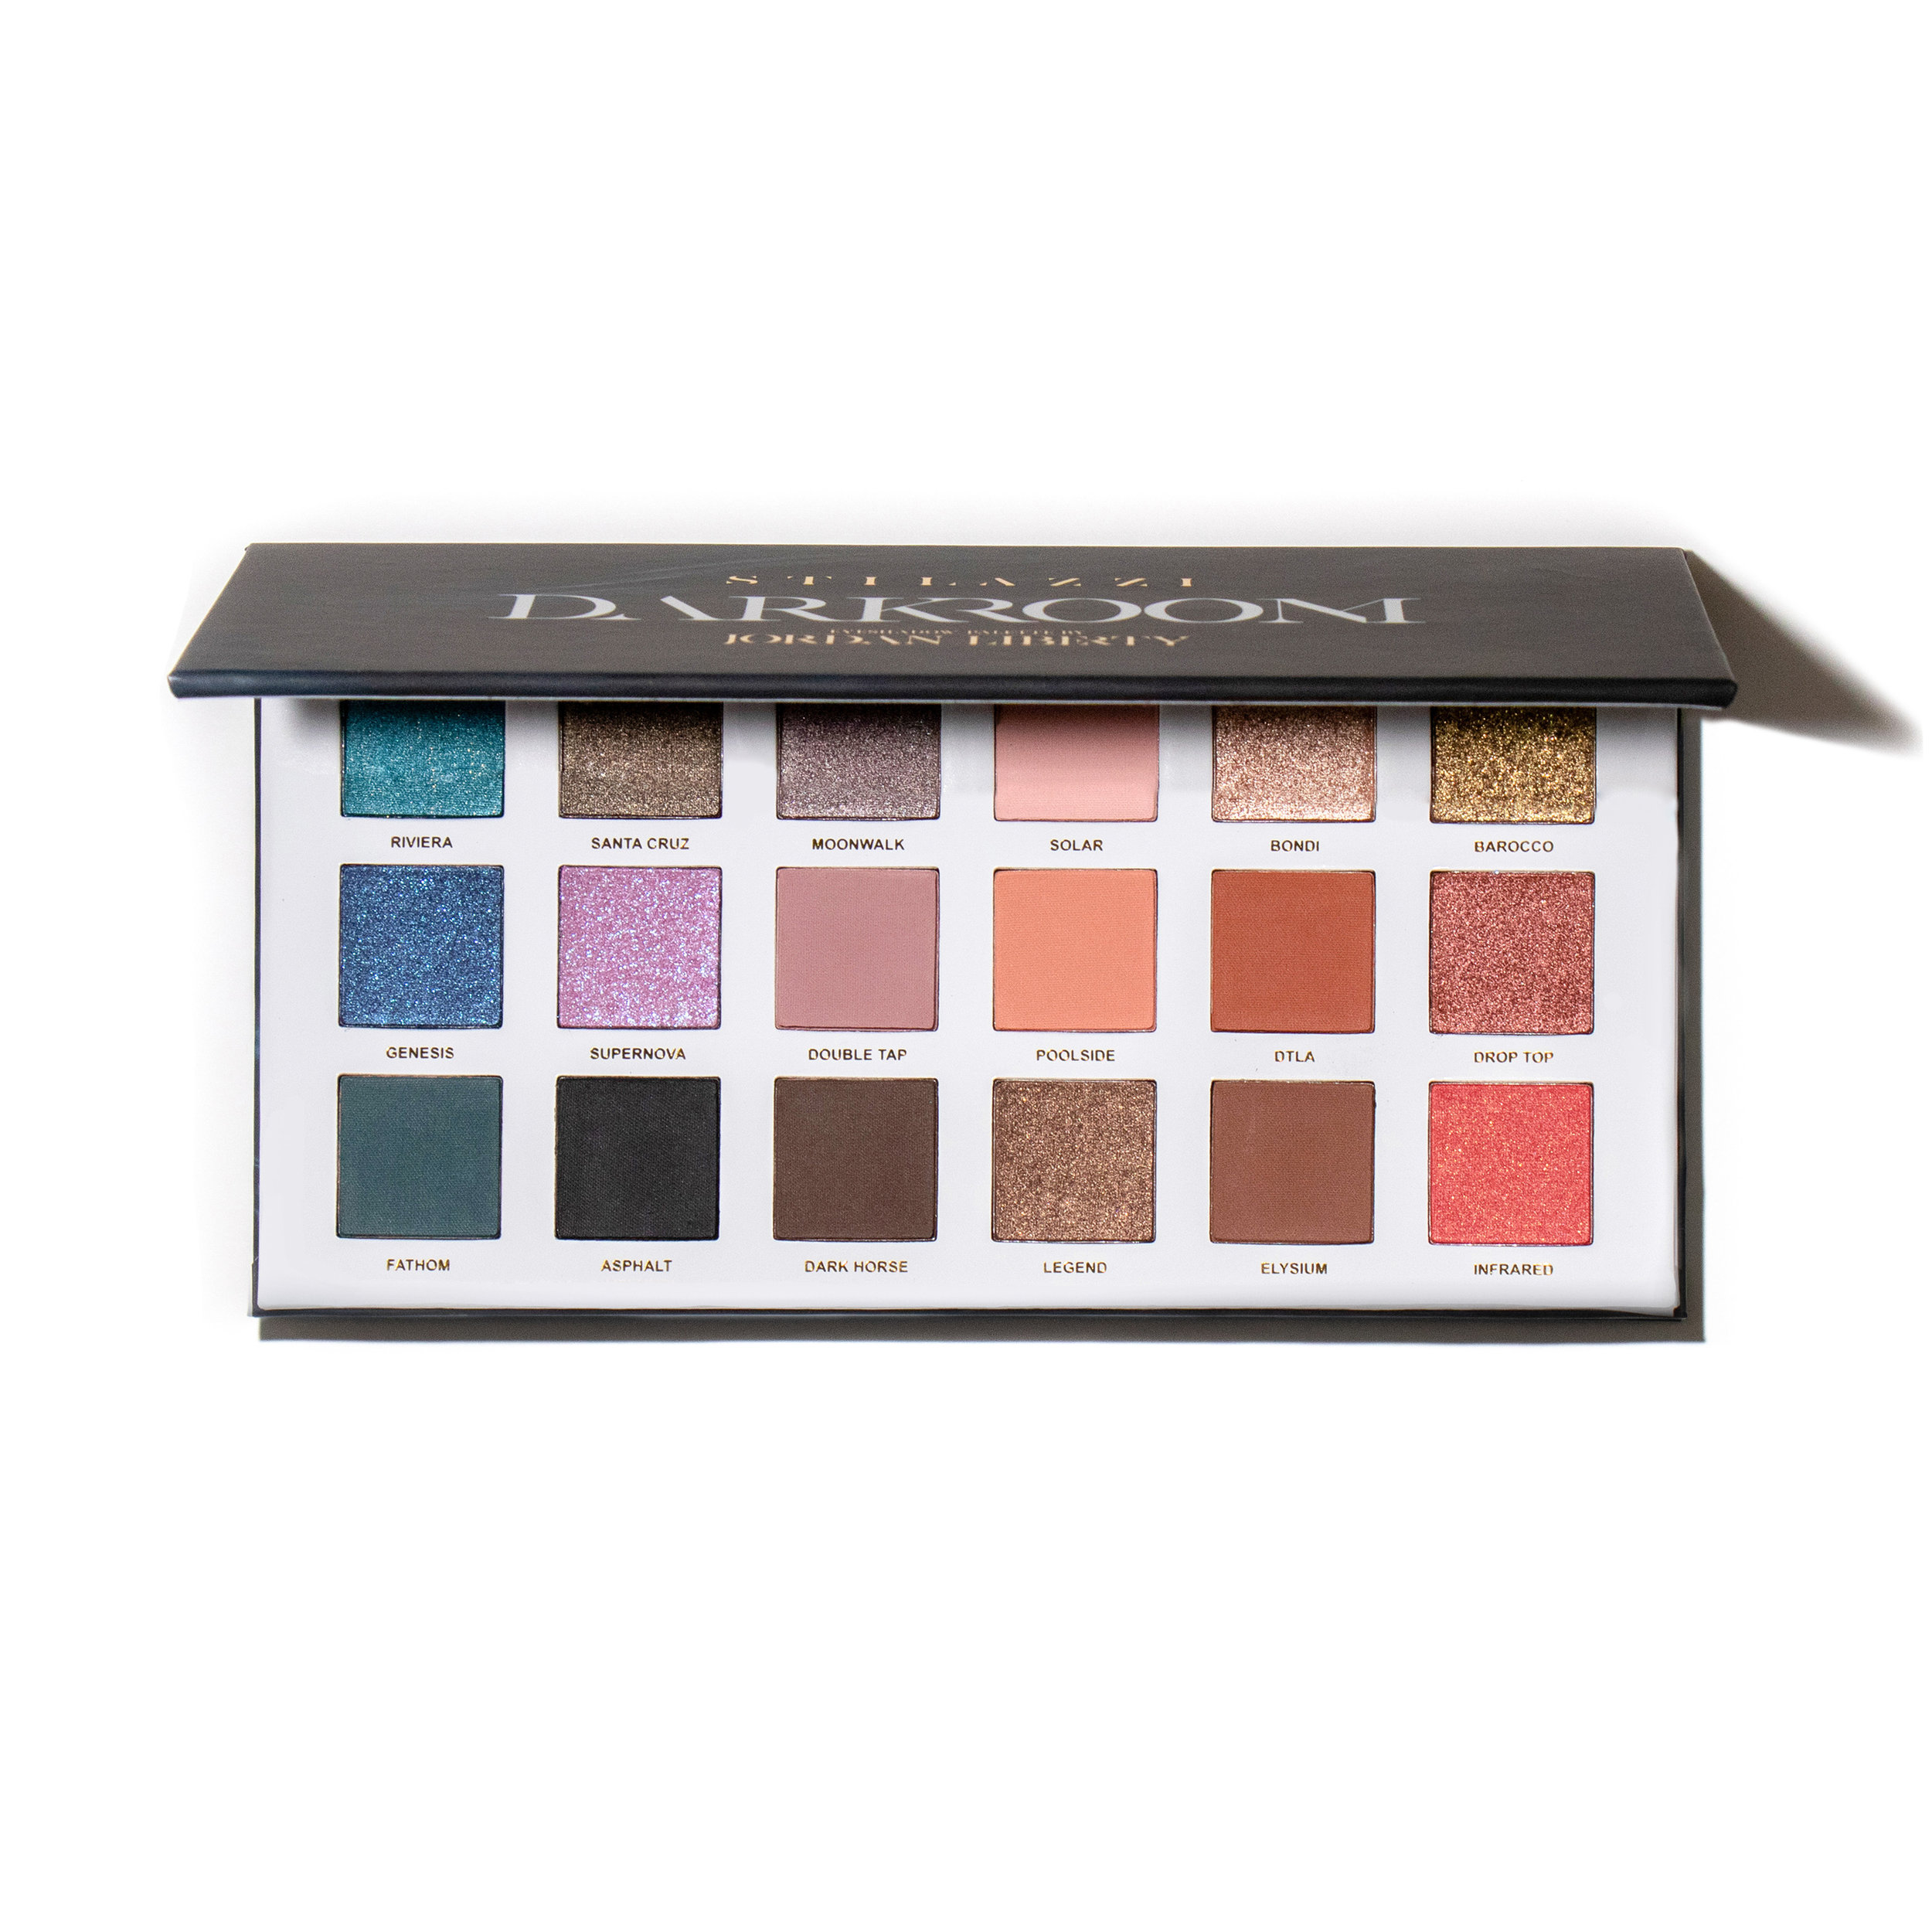 Stilazzi x Jordan Liberty- Darkroom Eyeshadow Palette